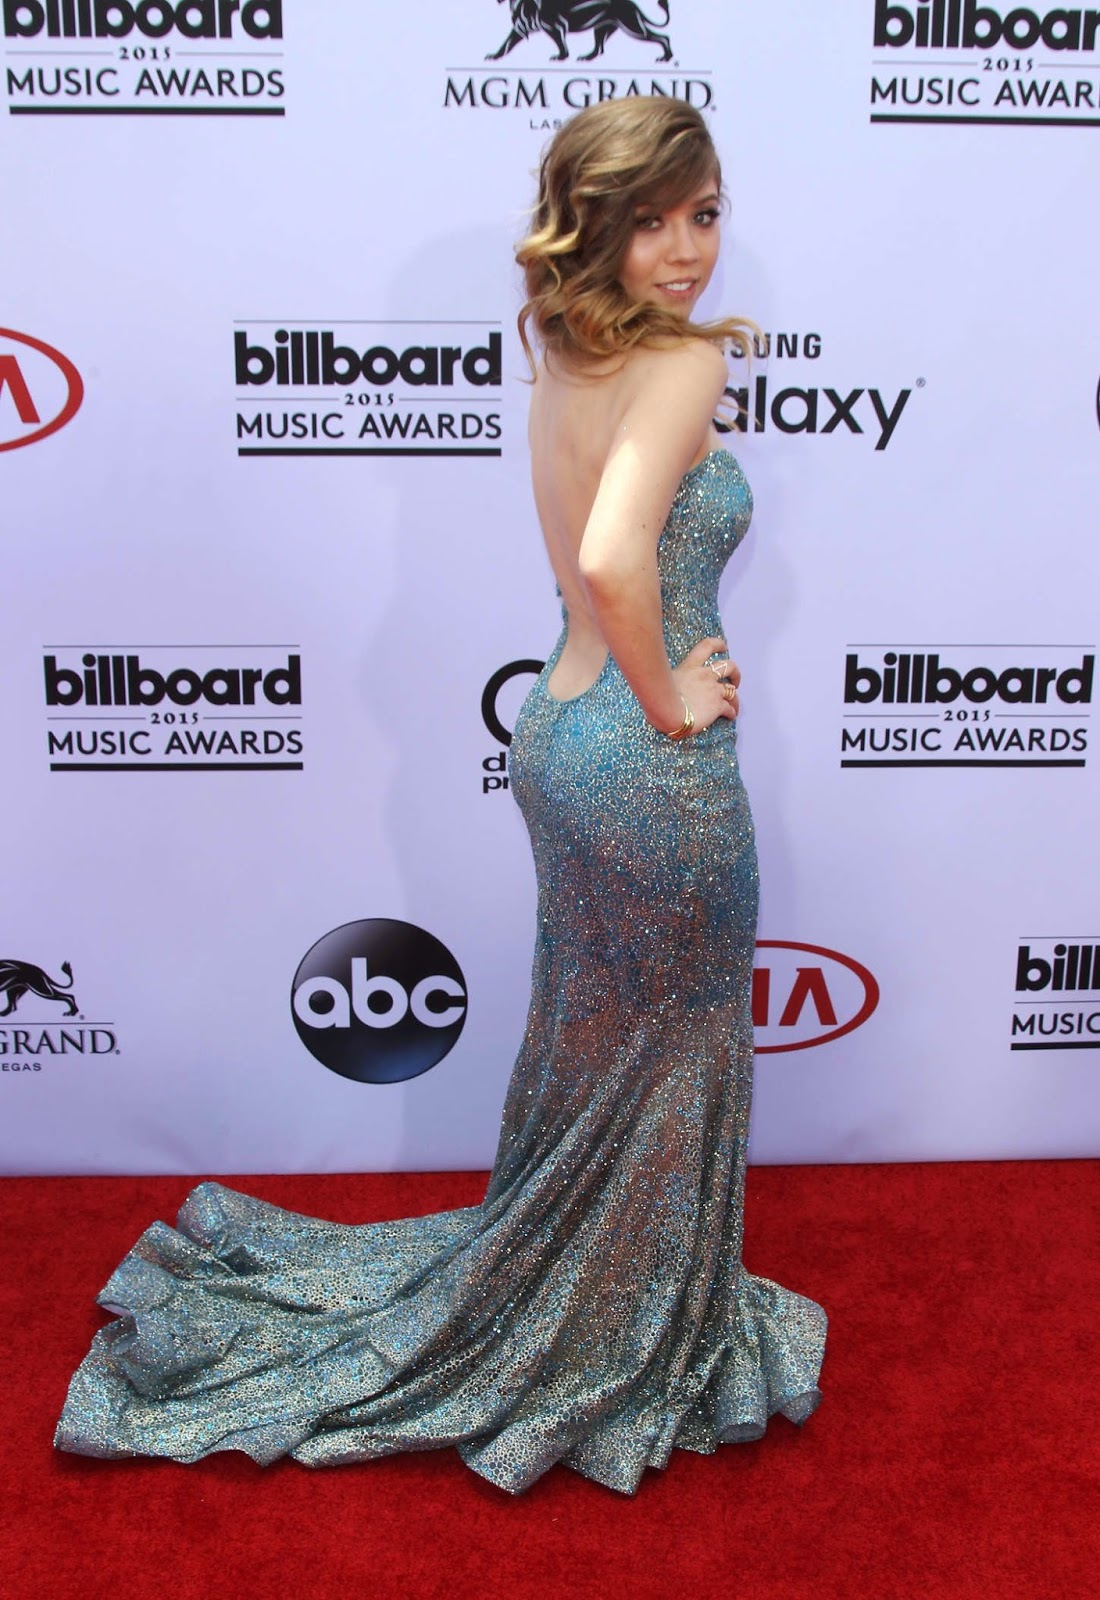 Actress, Producer, Singer @ Jennette McCurdy at 2015 Billboard Music Awards in Las Vegas